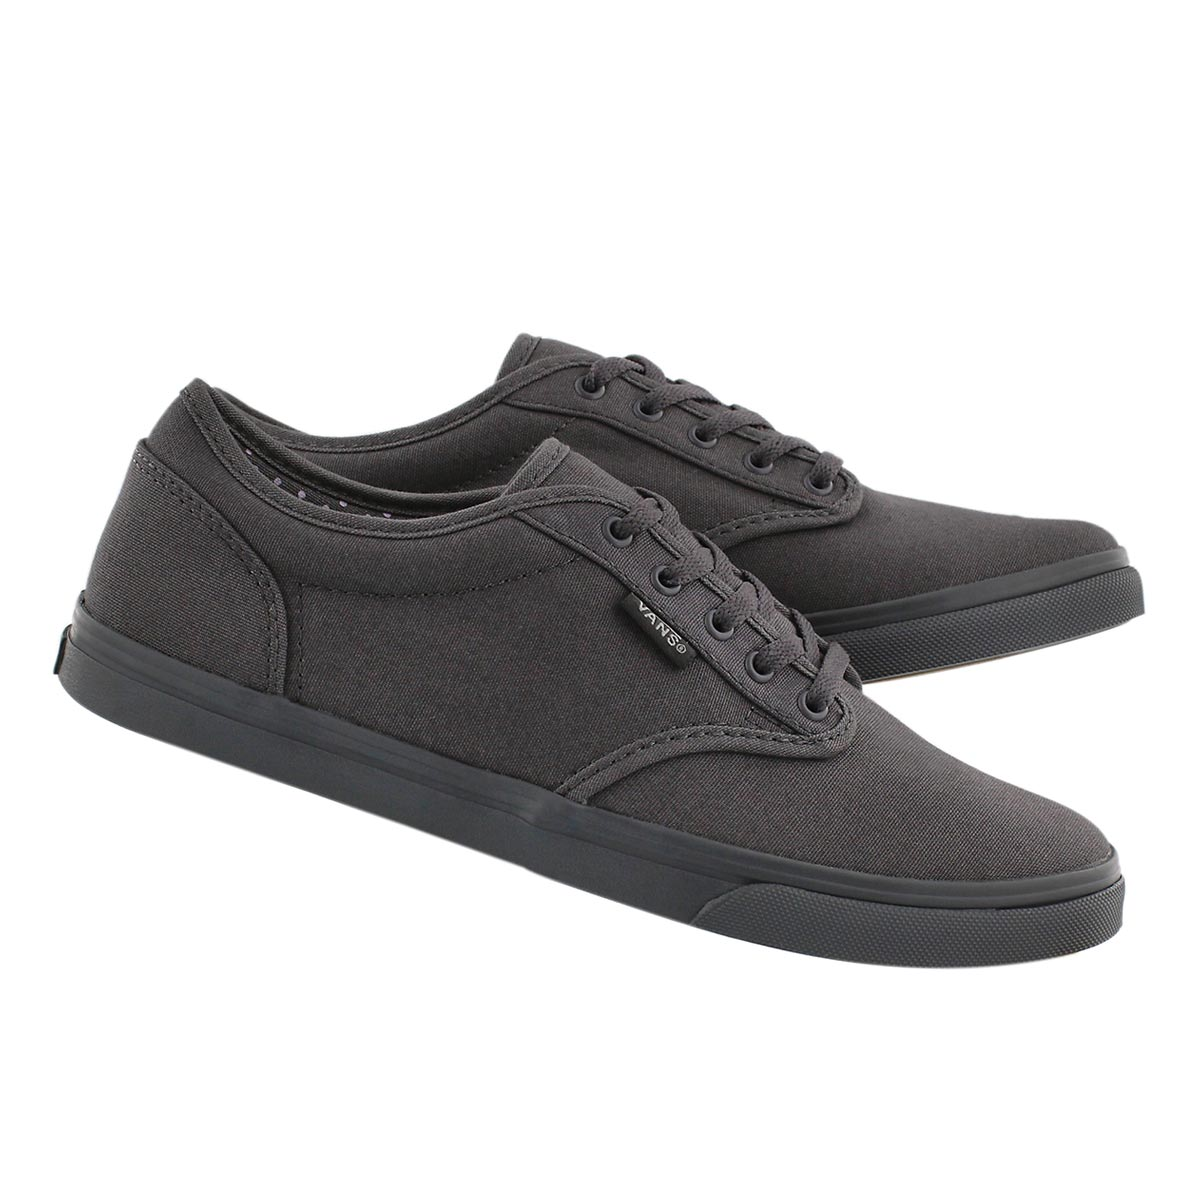 Lds Atwood Low asphalt lace up sneaker